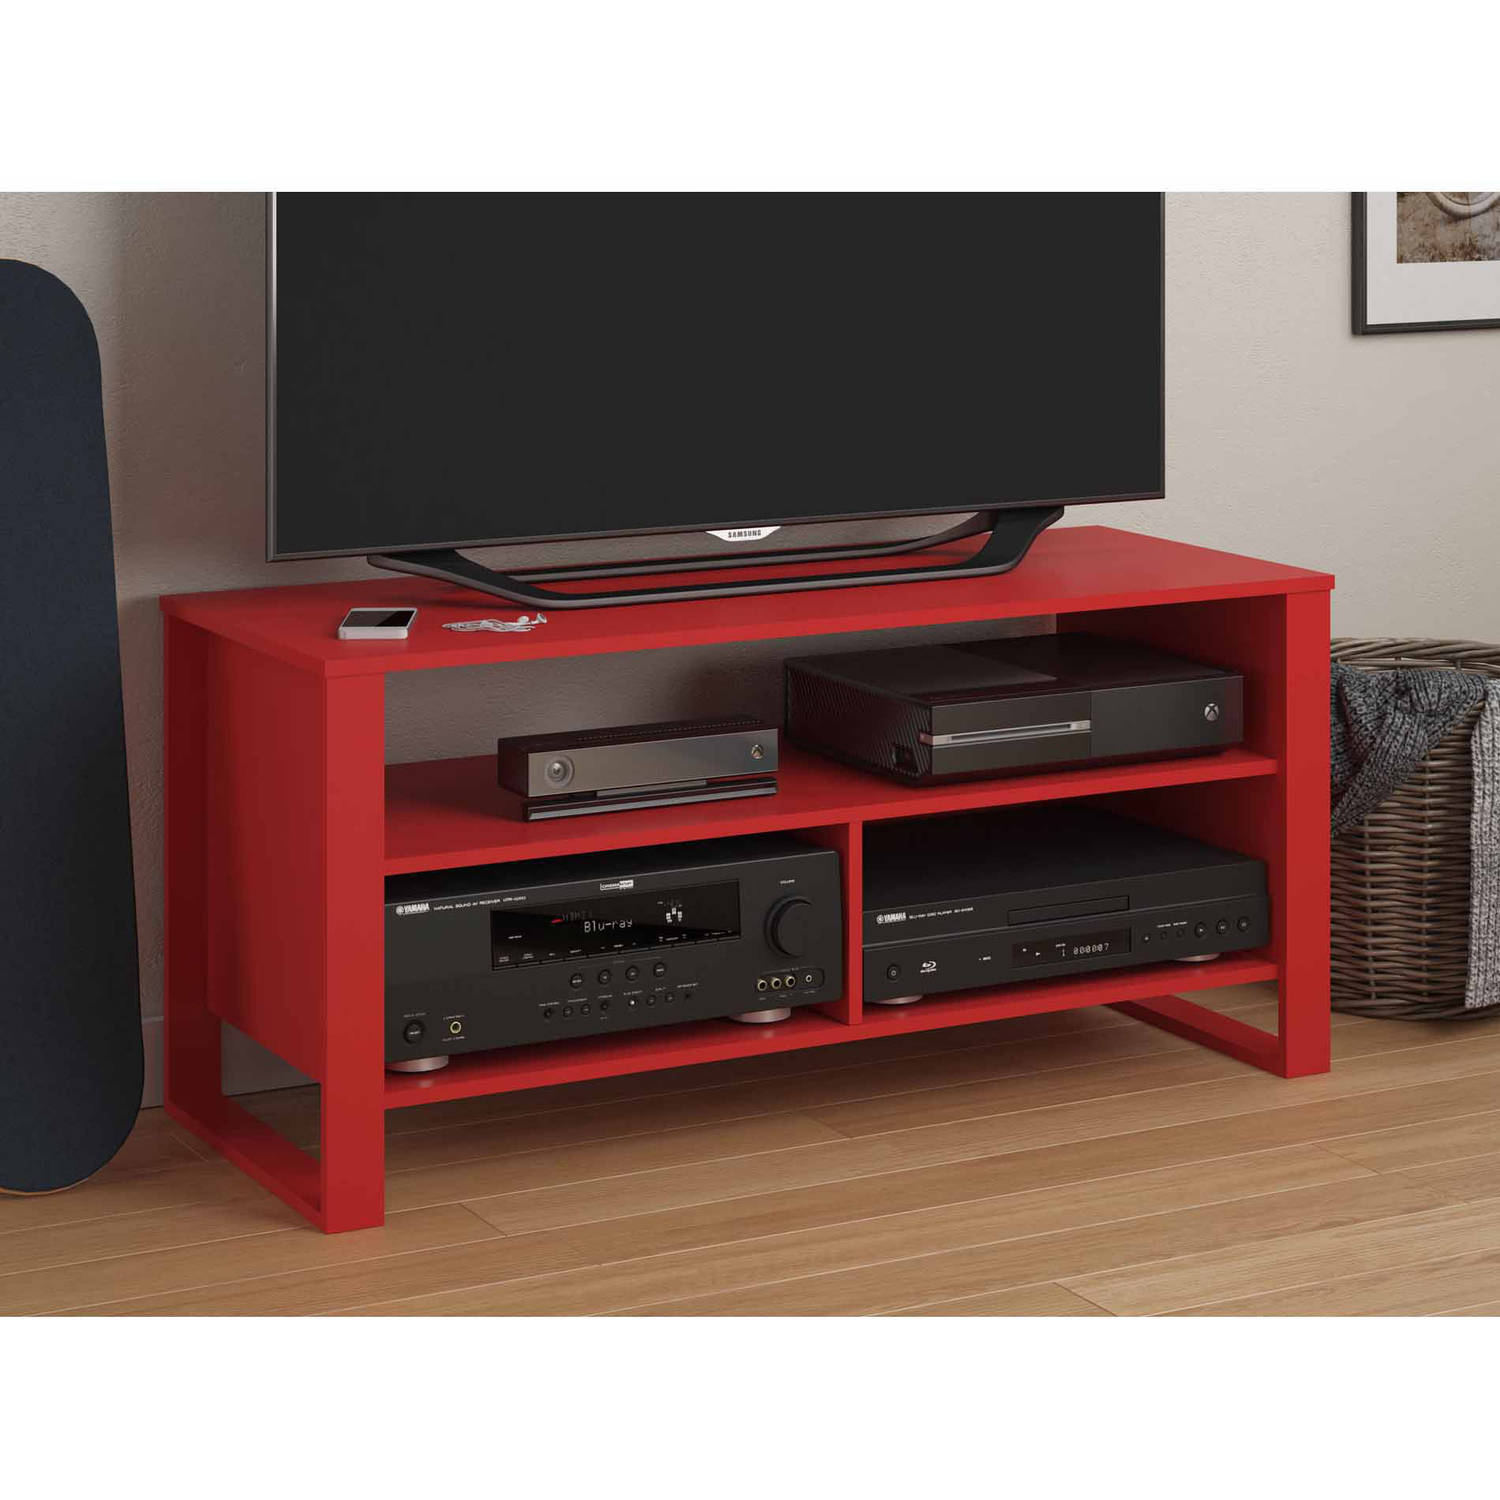 Mainstays TV Stand for TVs up to 44